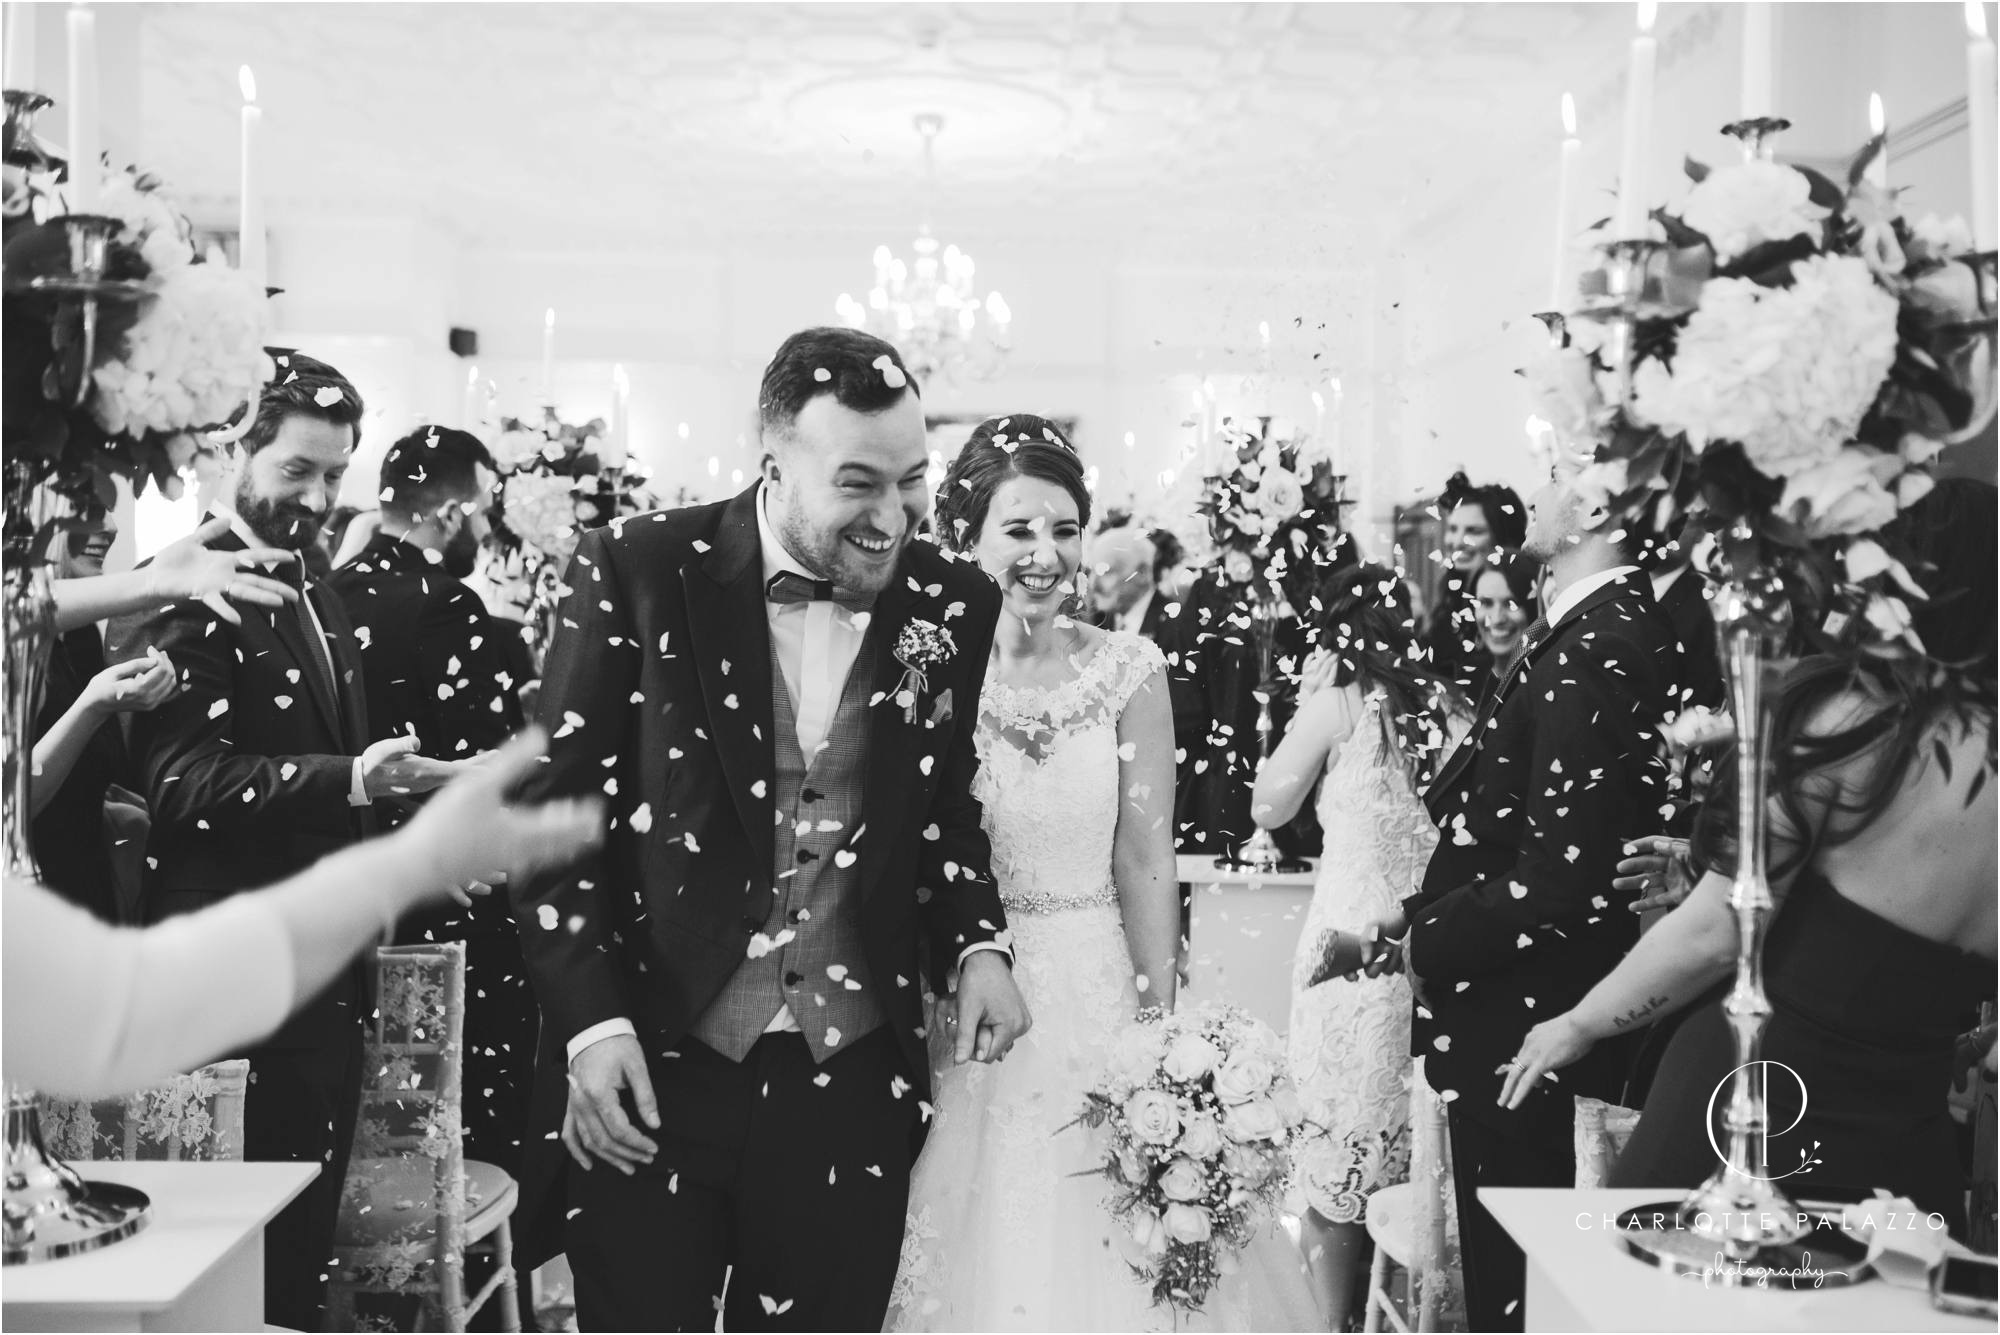 Kirst_Peter_Snowy_Nunsmere_Hall_Winter_Wedding_Cheshire_Photographer_0013.jpg